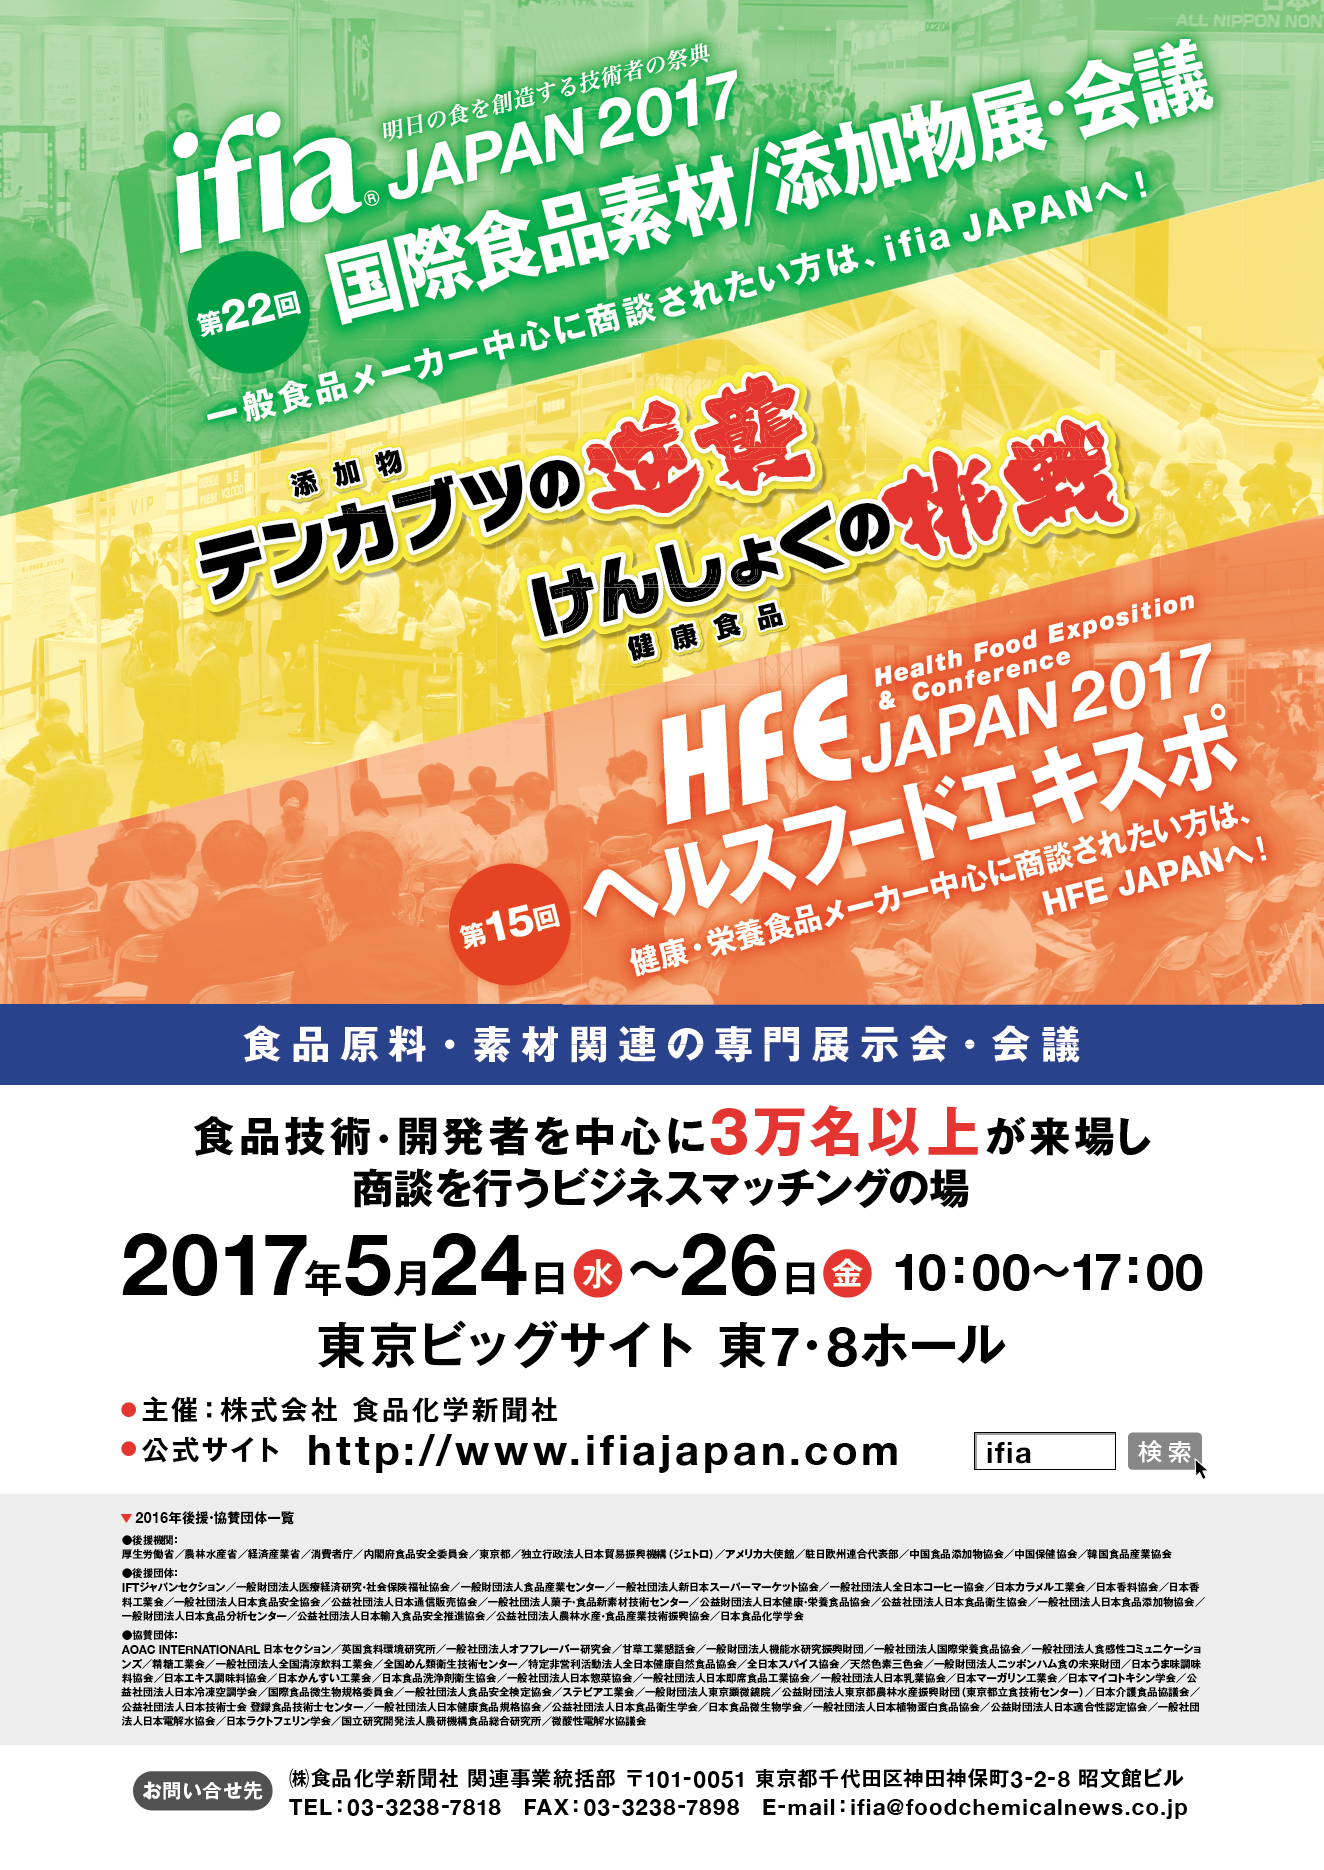 ifiahfe2017poster